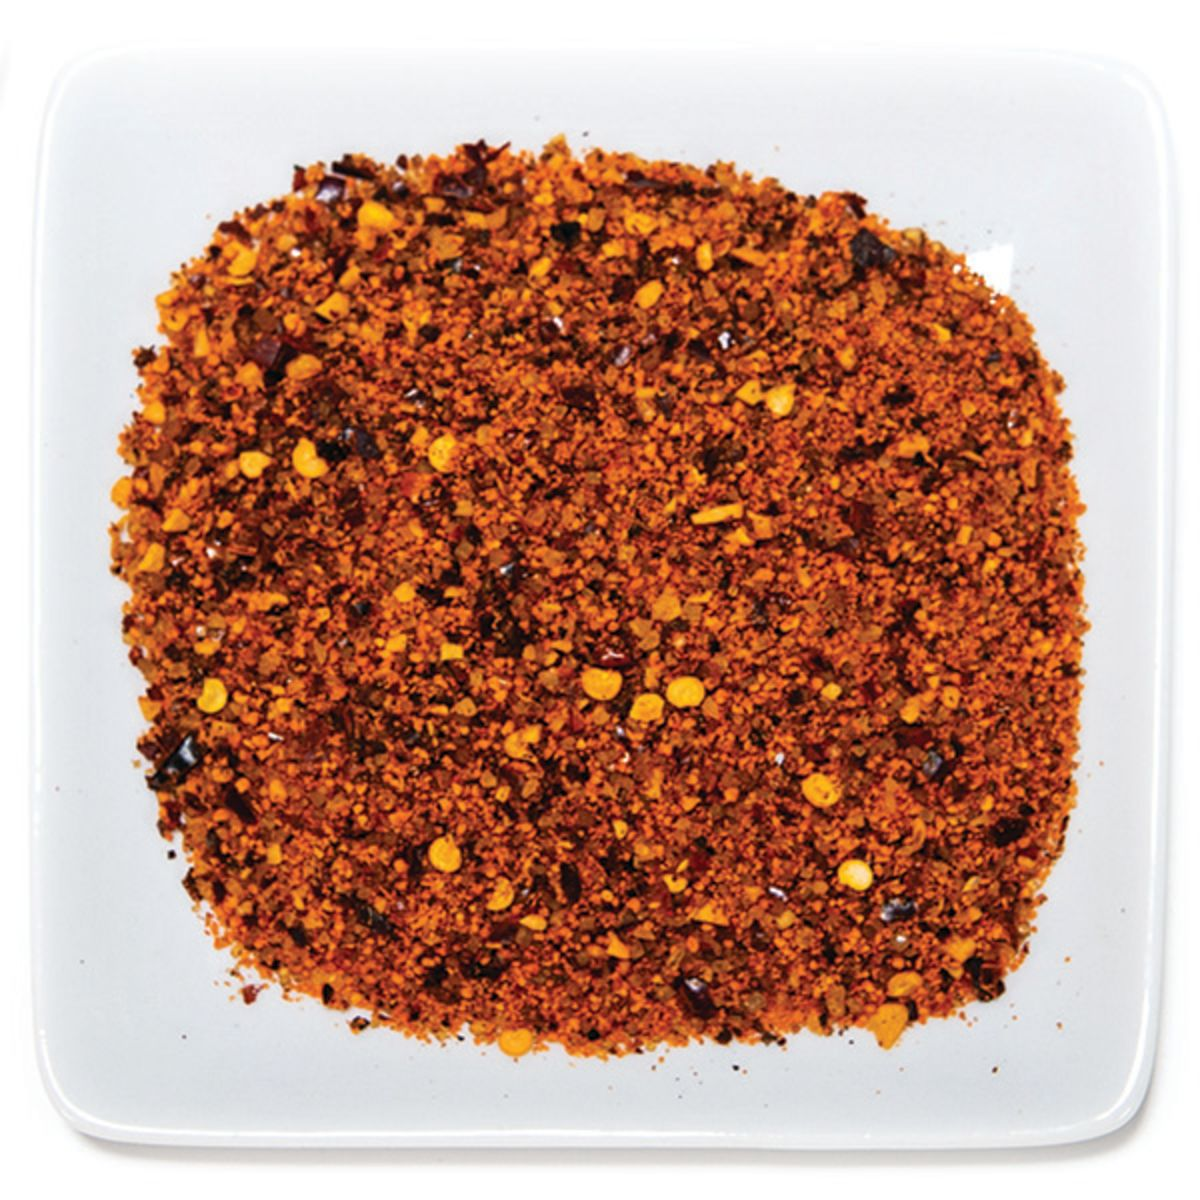 Honey Aleppo Pepper, 5.6 ozs by weight [3/4 cup by volume]